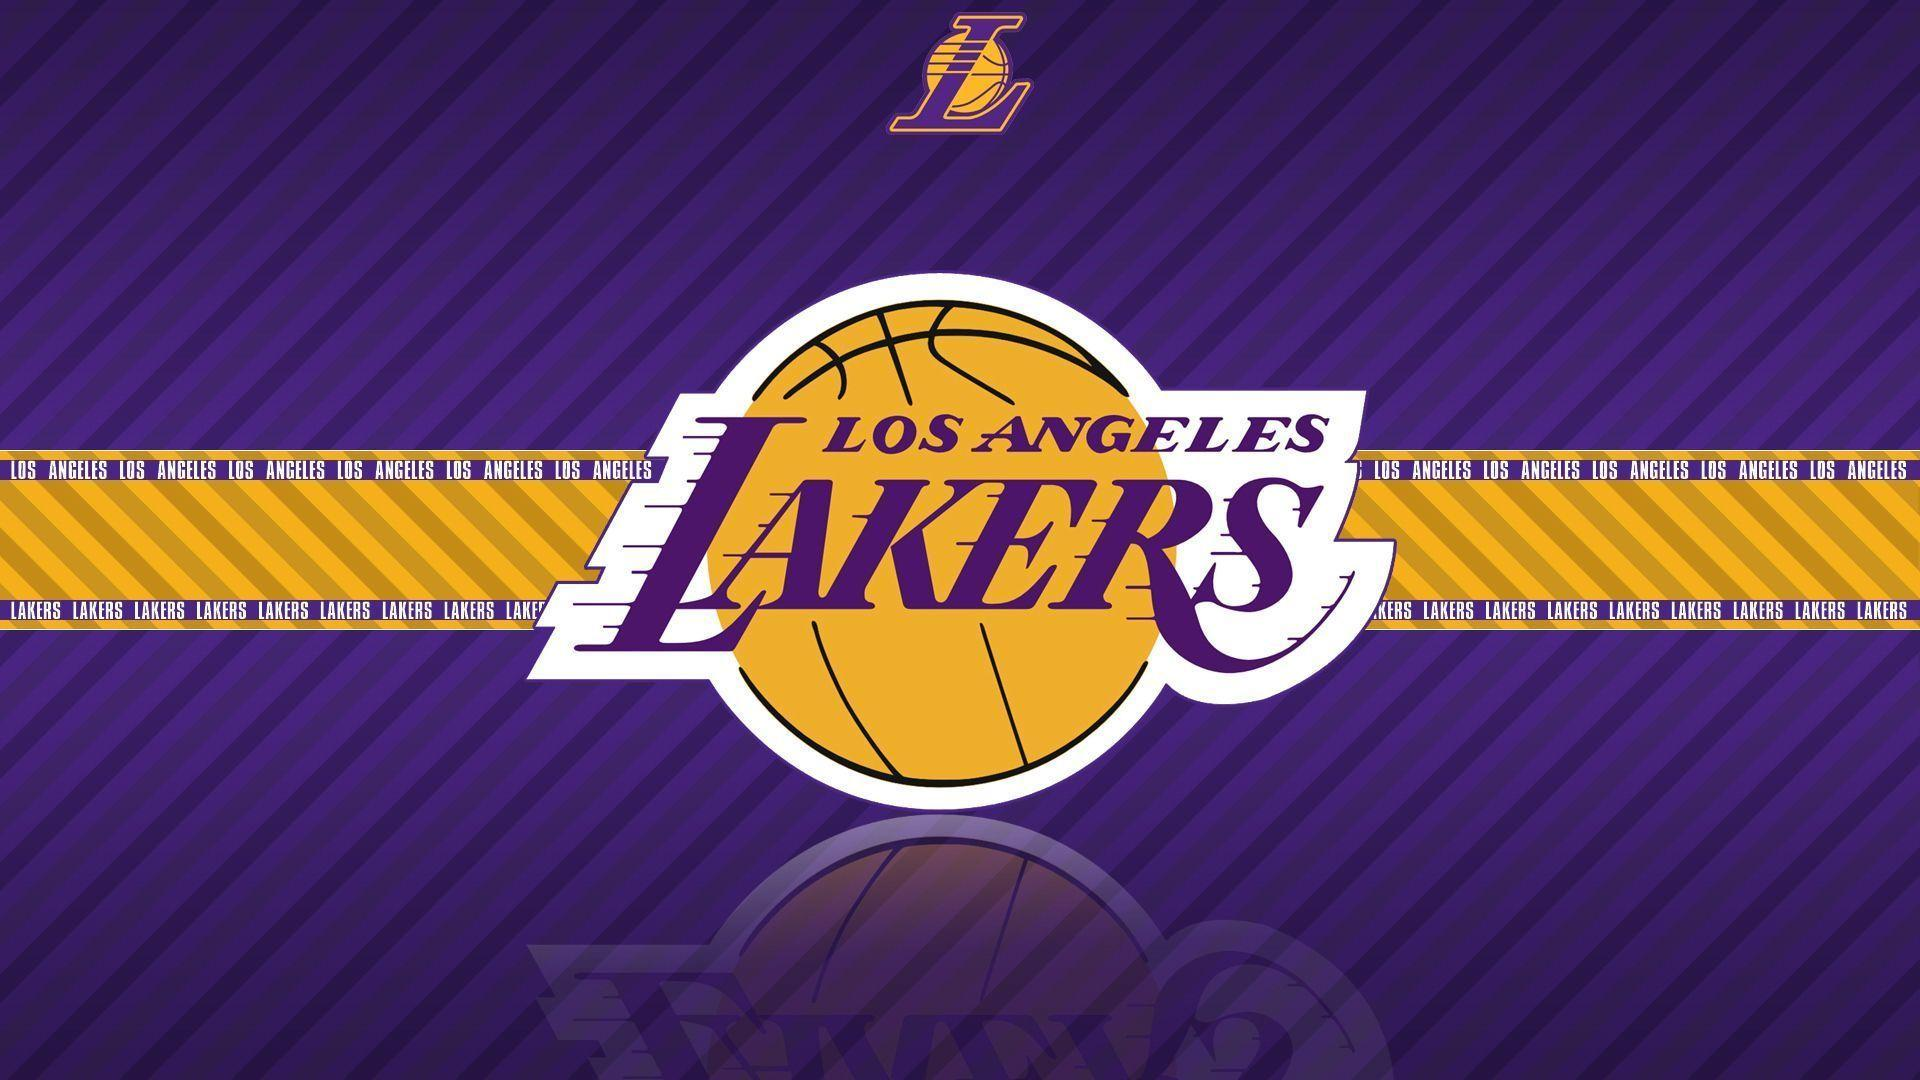 nba team logos wallpapers 2016 wallpaper cave